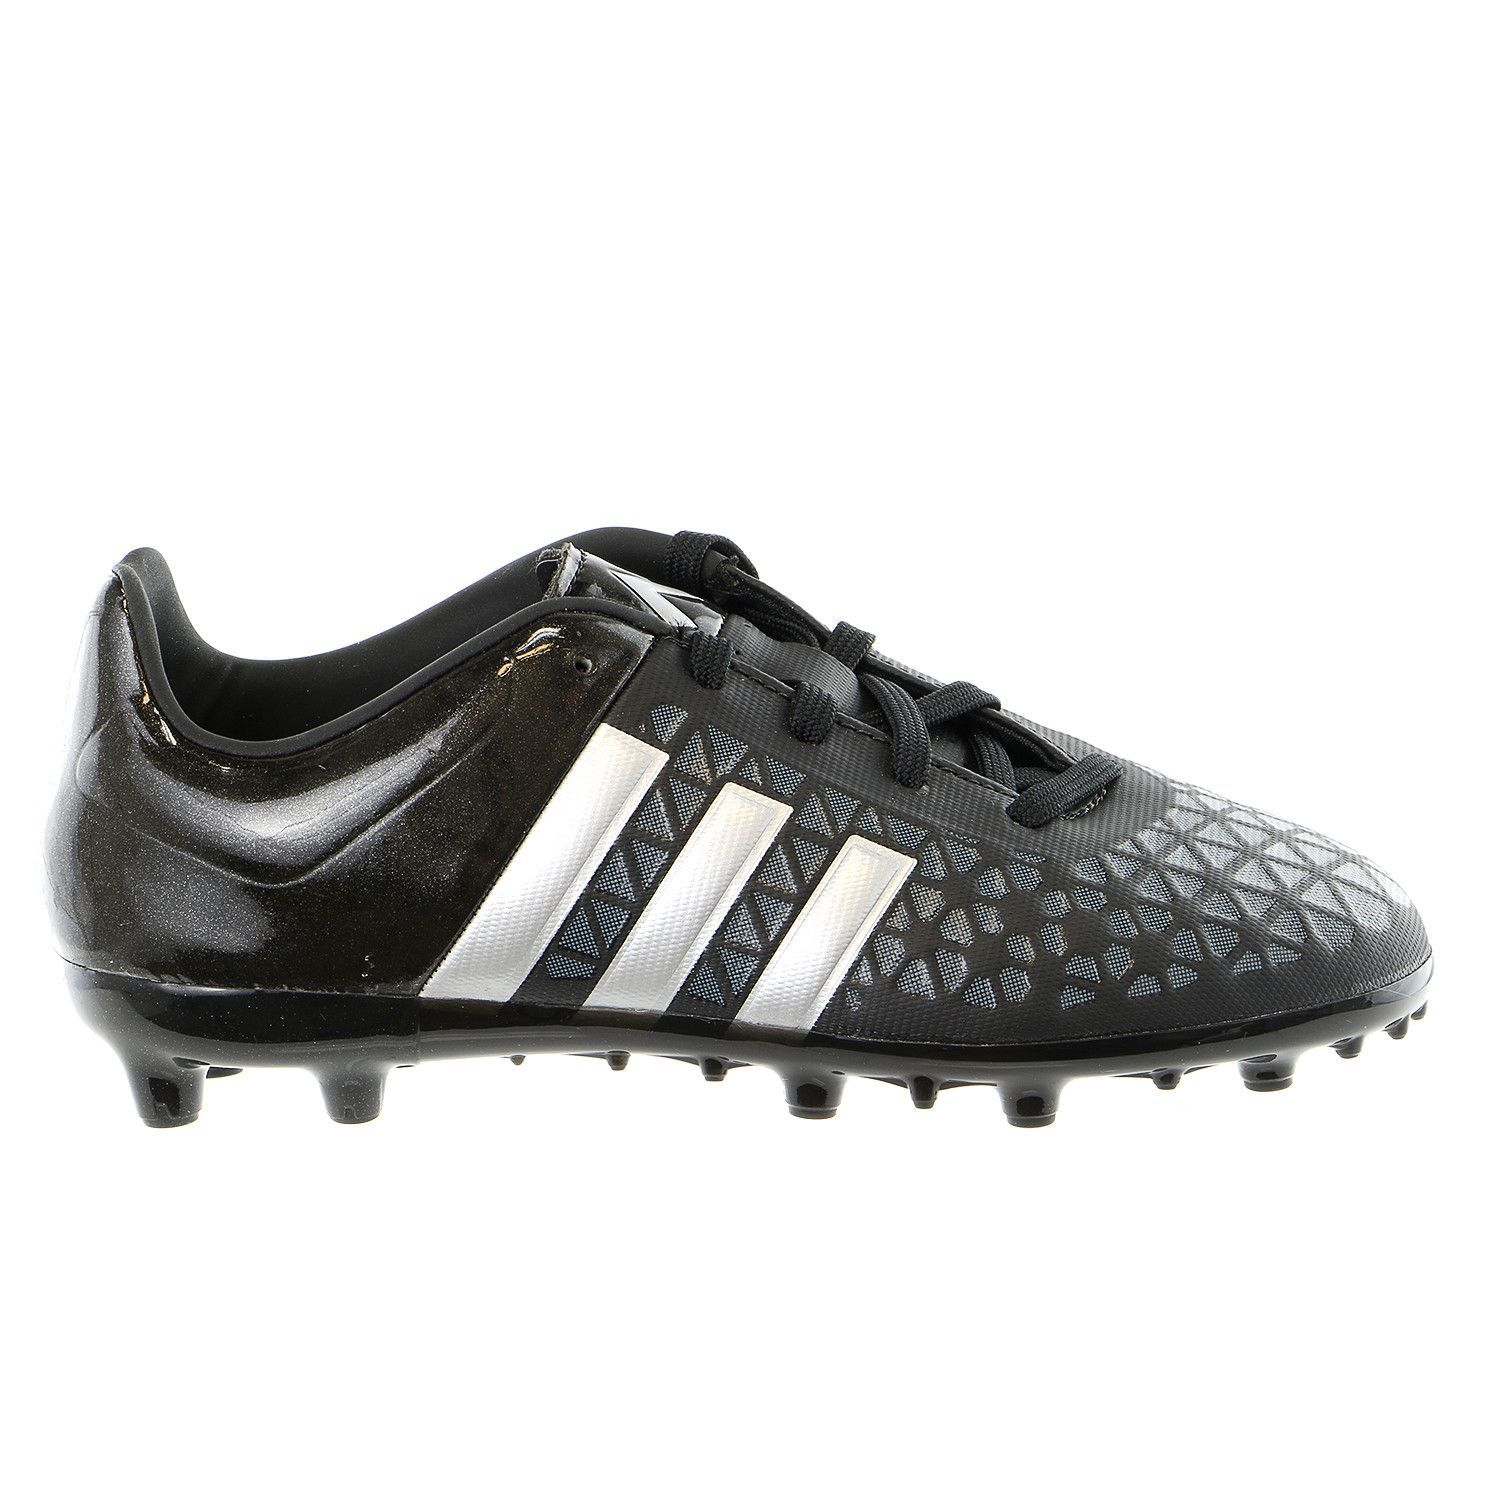 size 40 95492 d7072 Adidas ACE15.3 FGAG Shoes - Boys